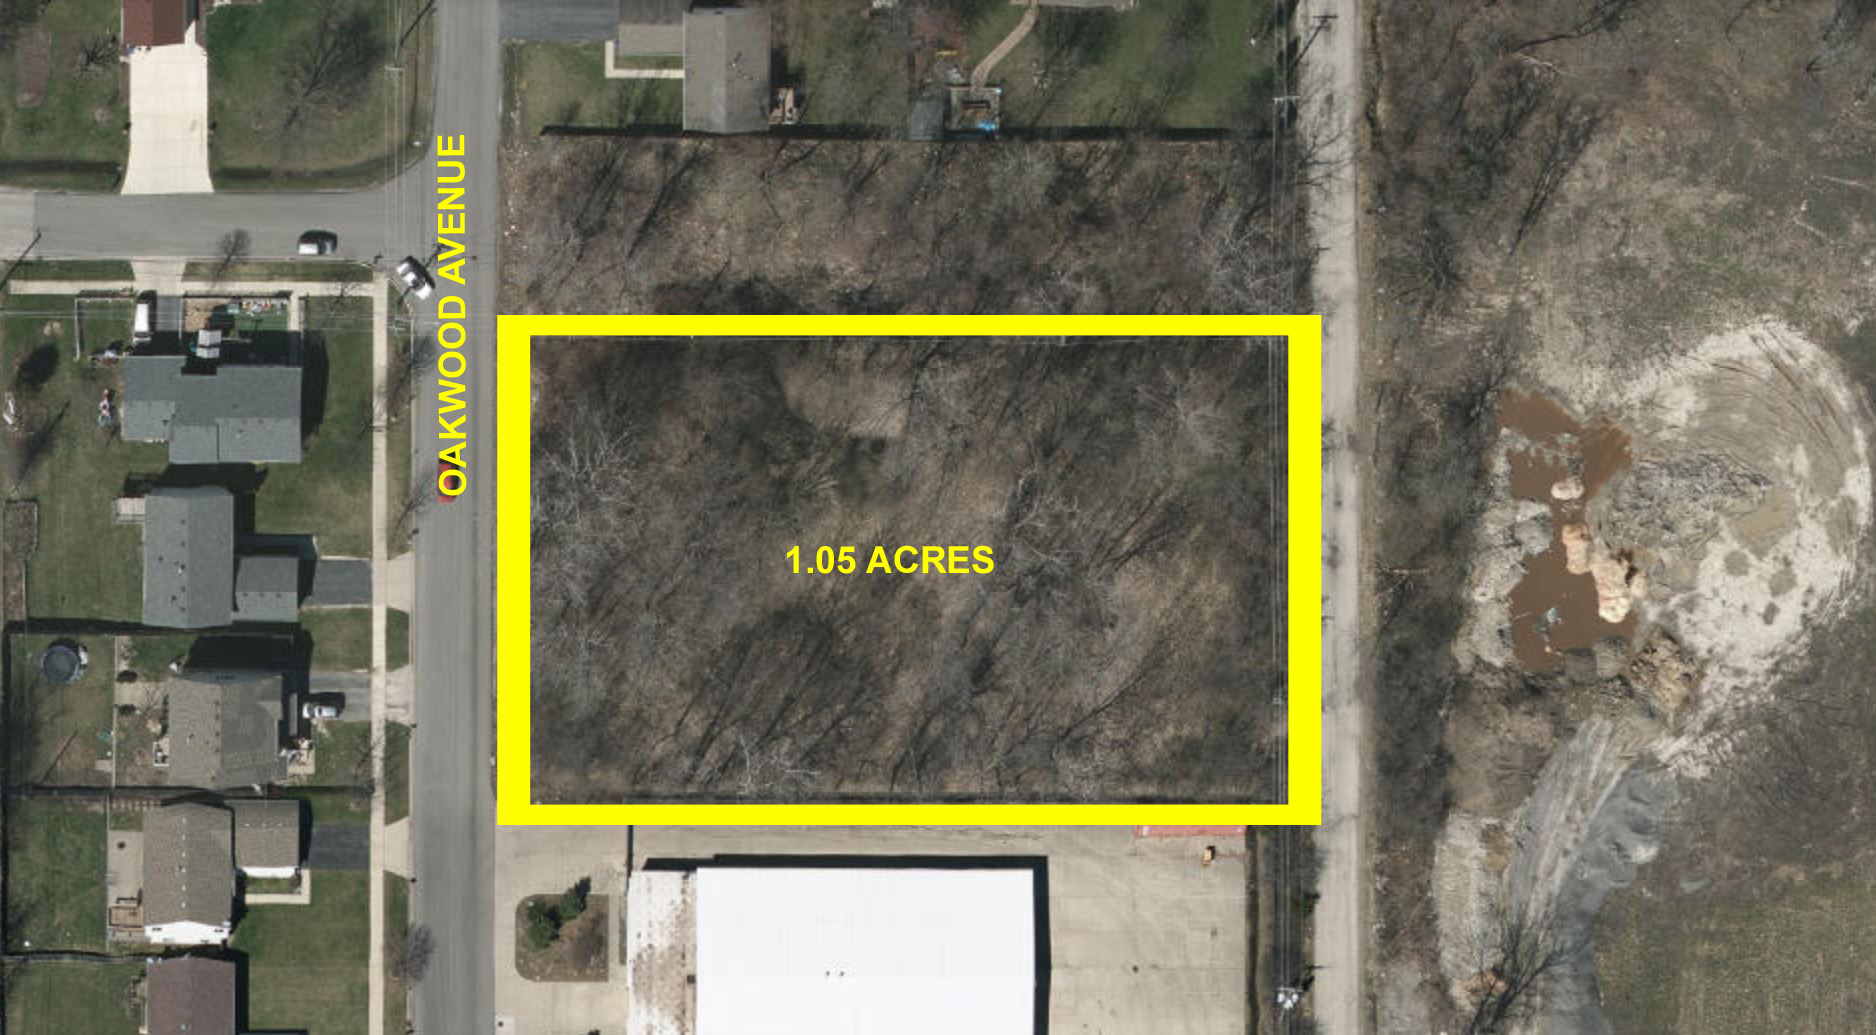 1.05 Acres, Oakwood Ave., Waukegan, IL